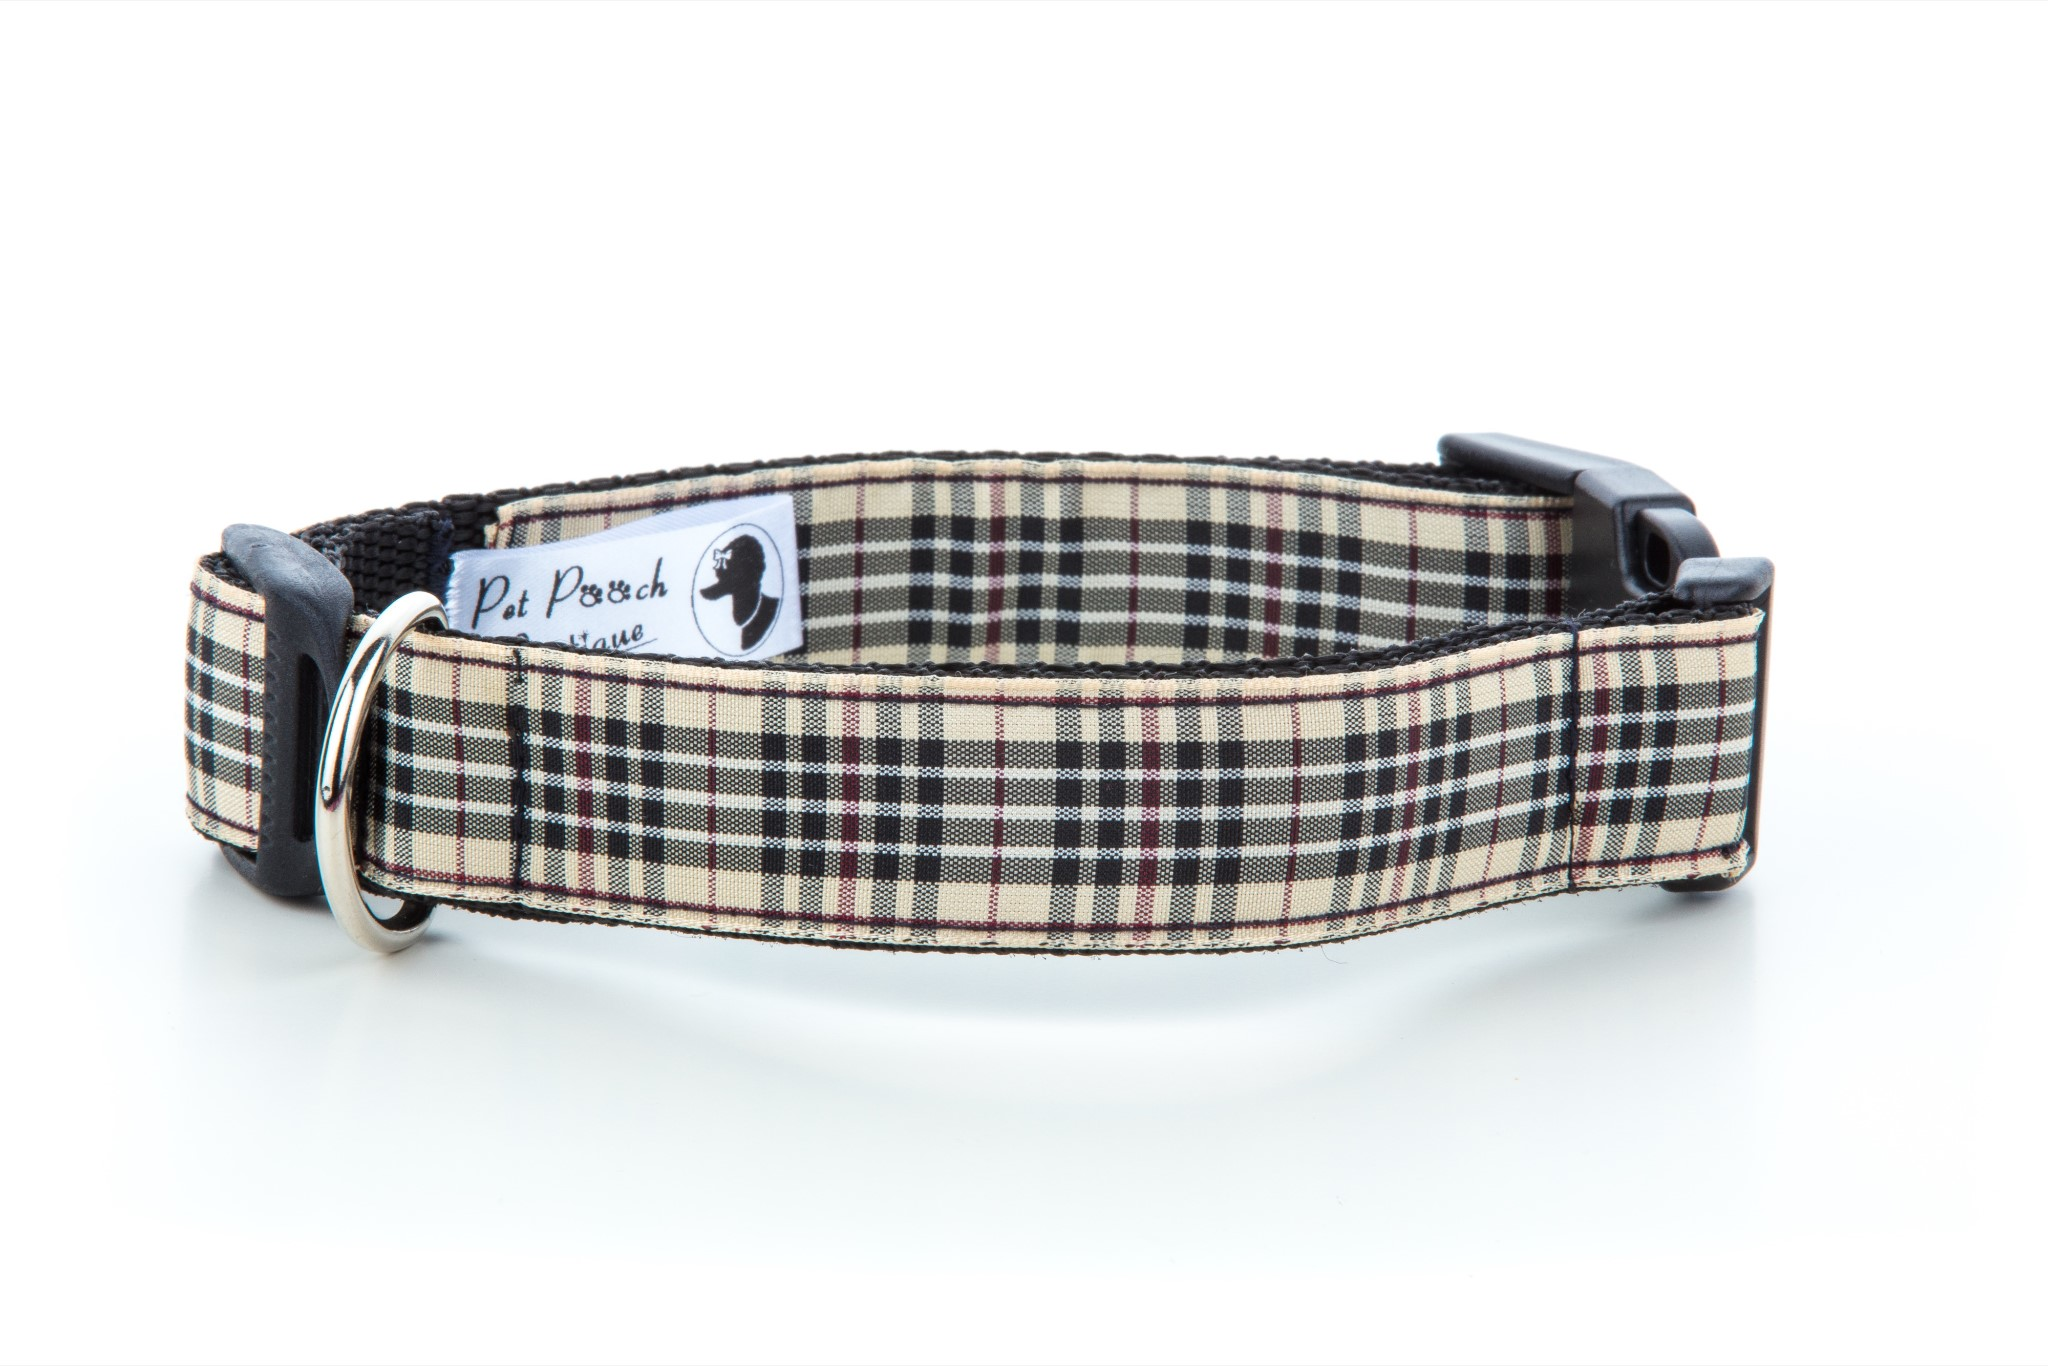 Burberry Dog Collars For Sale